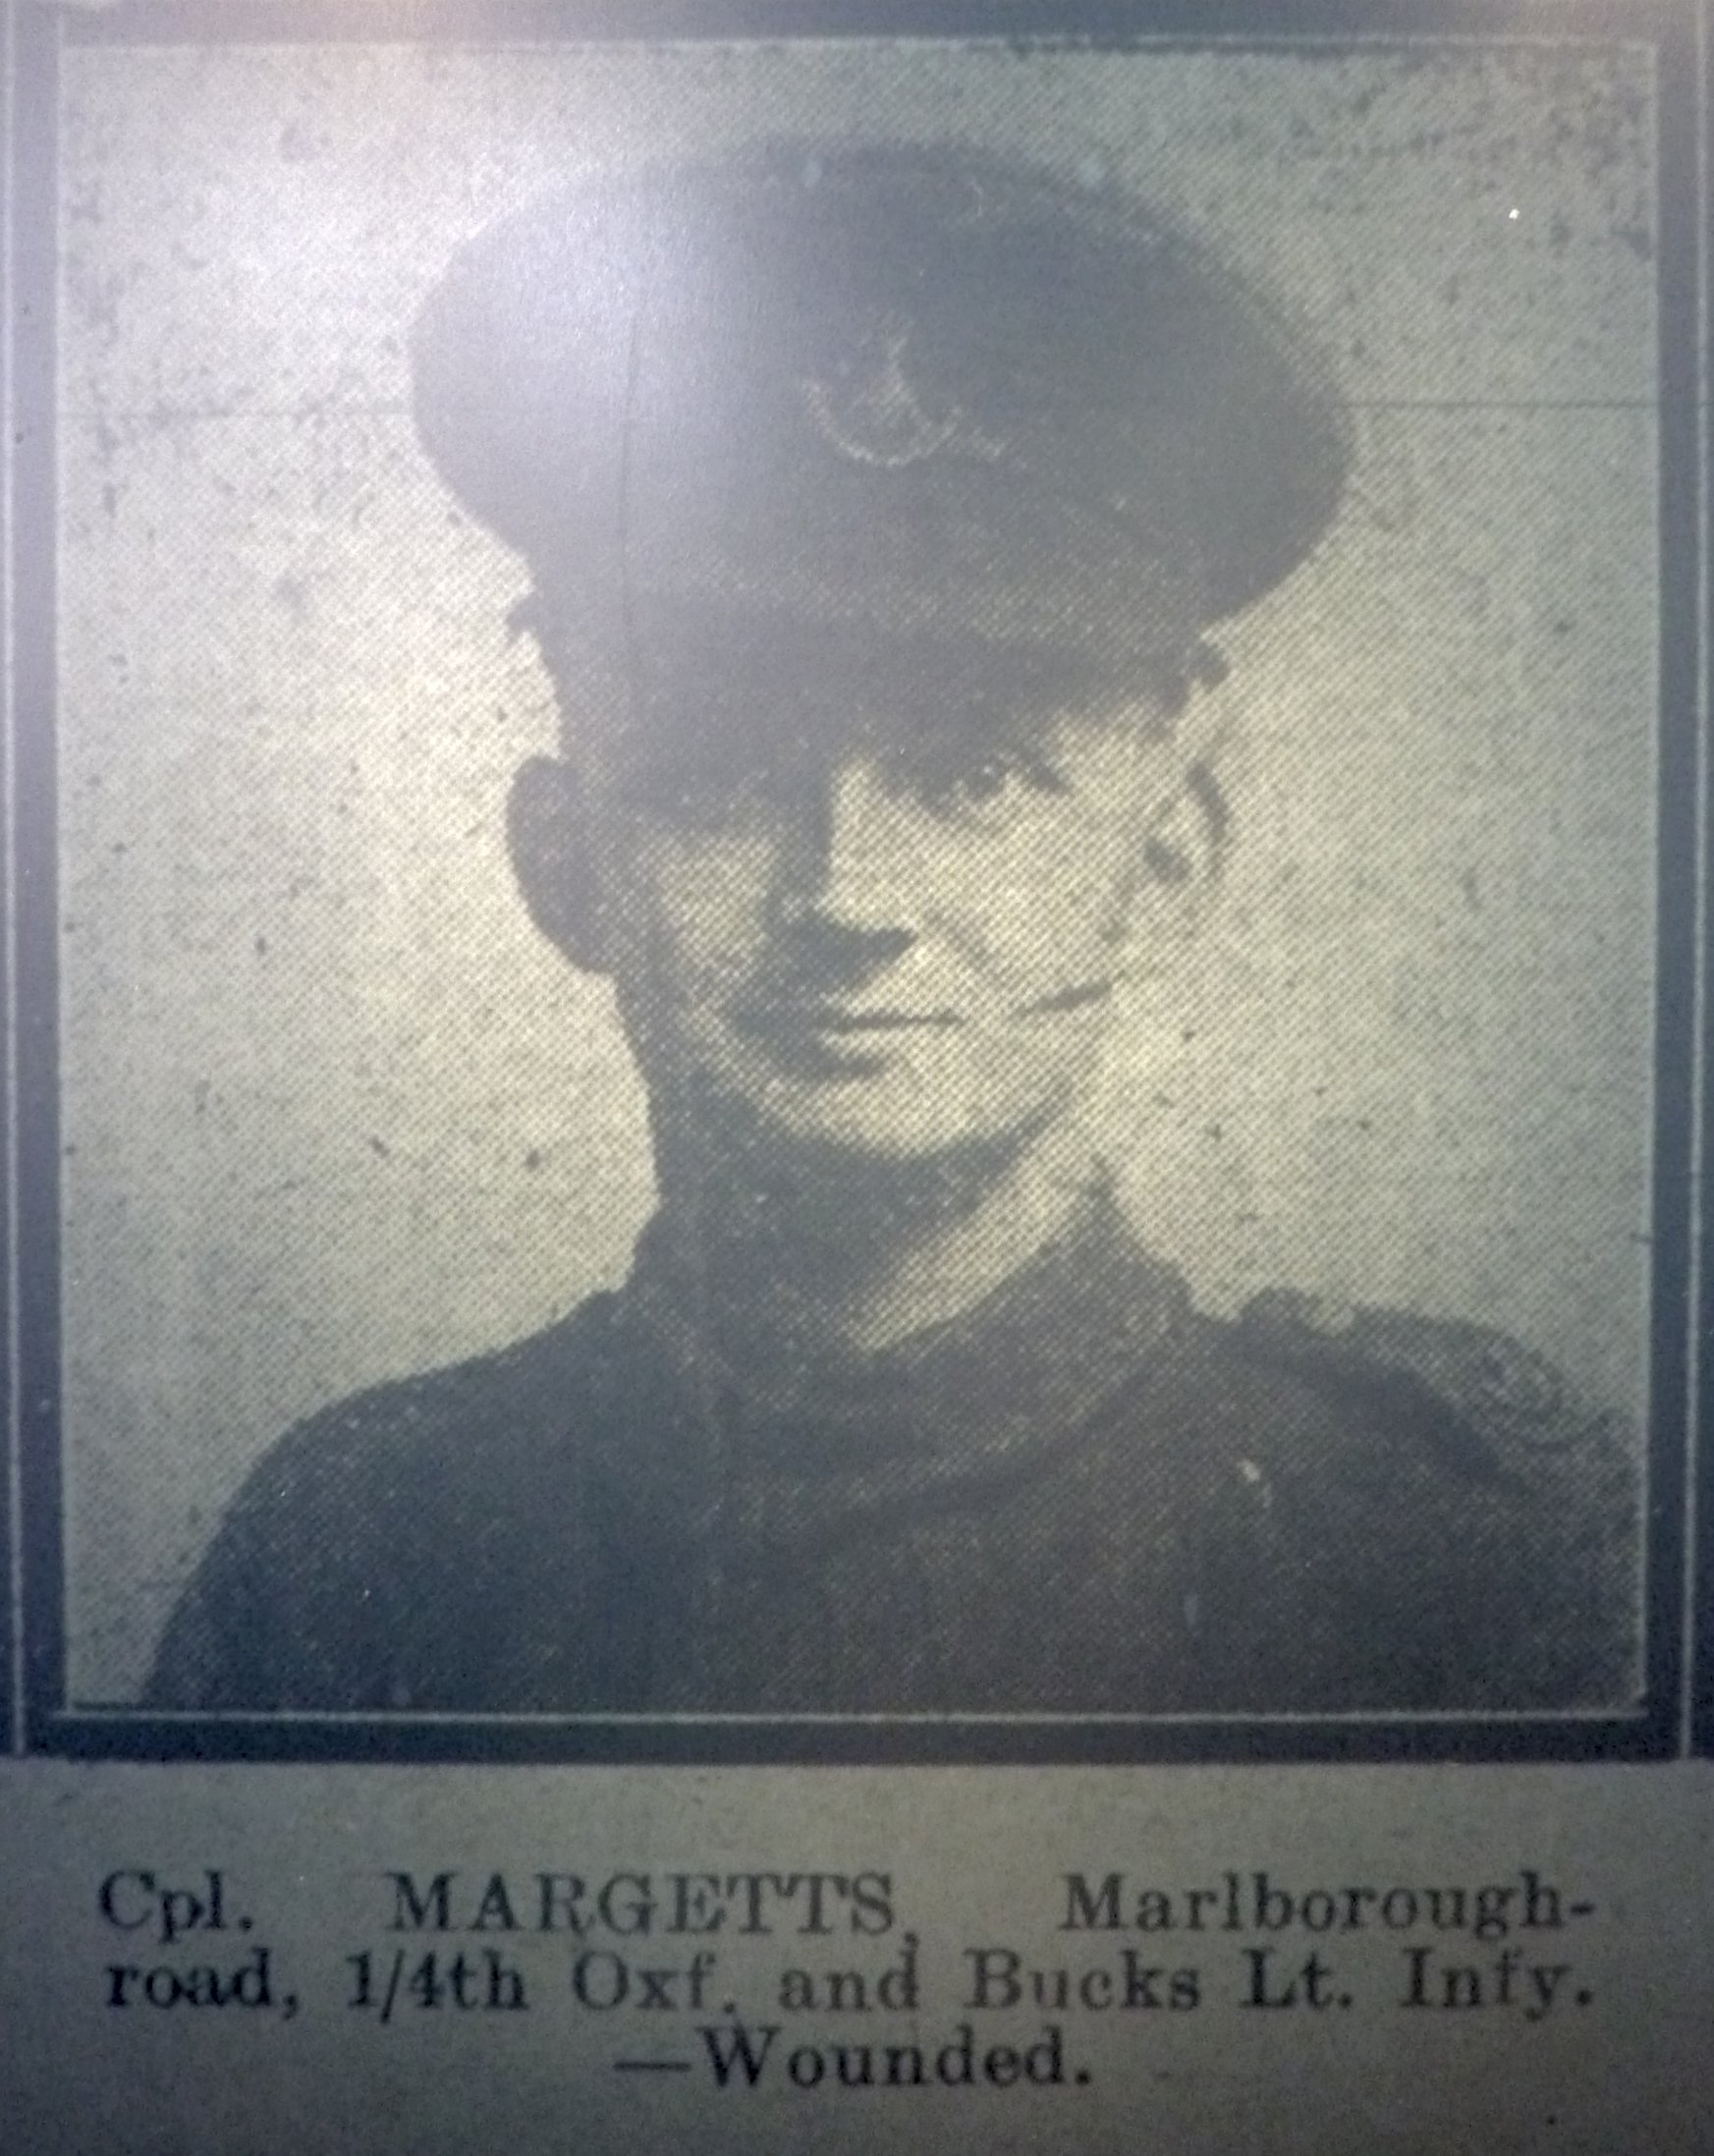 Margetts wounded 09-08-1916 p.6